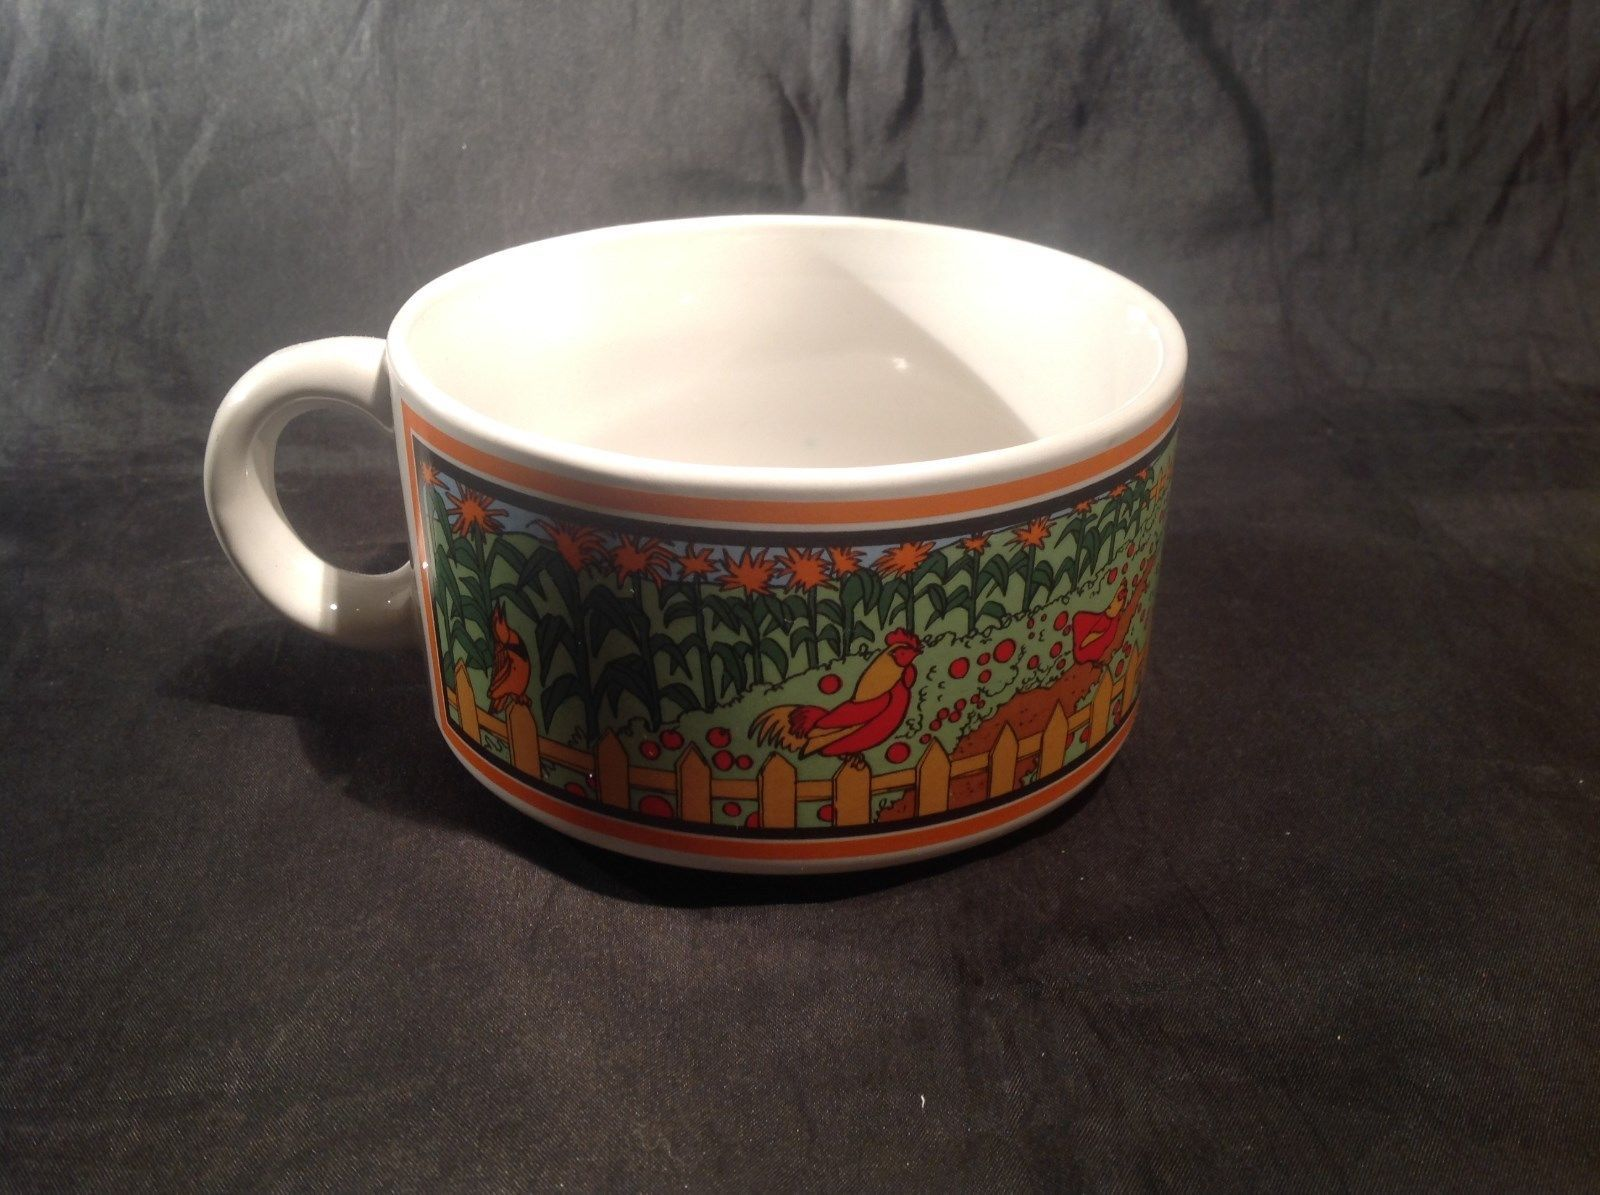 Wide Ceramic Cup / Soup Bowl with Garden Display on Sides Small Handle